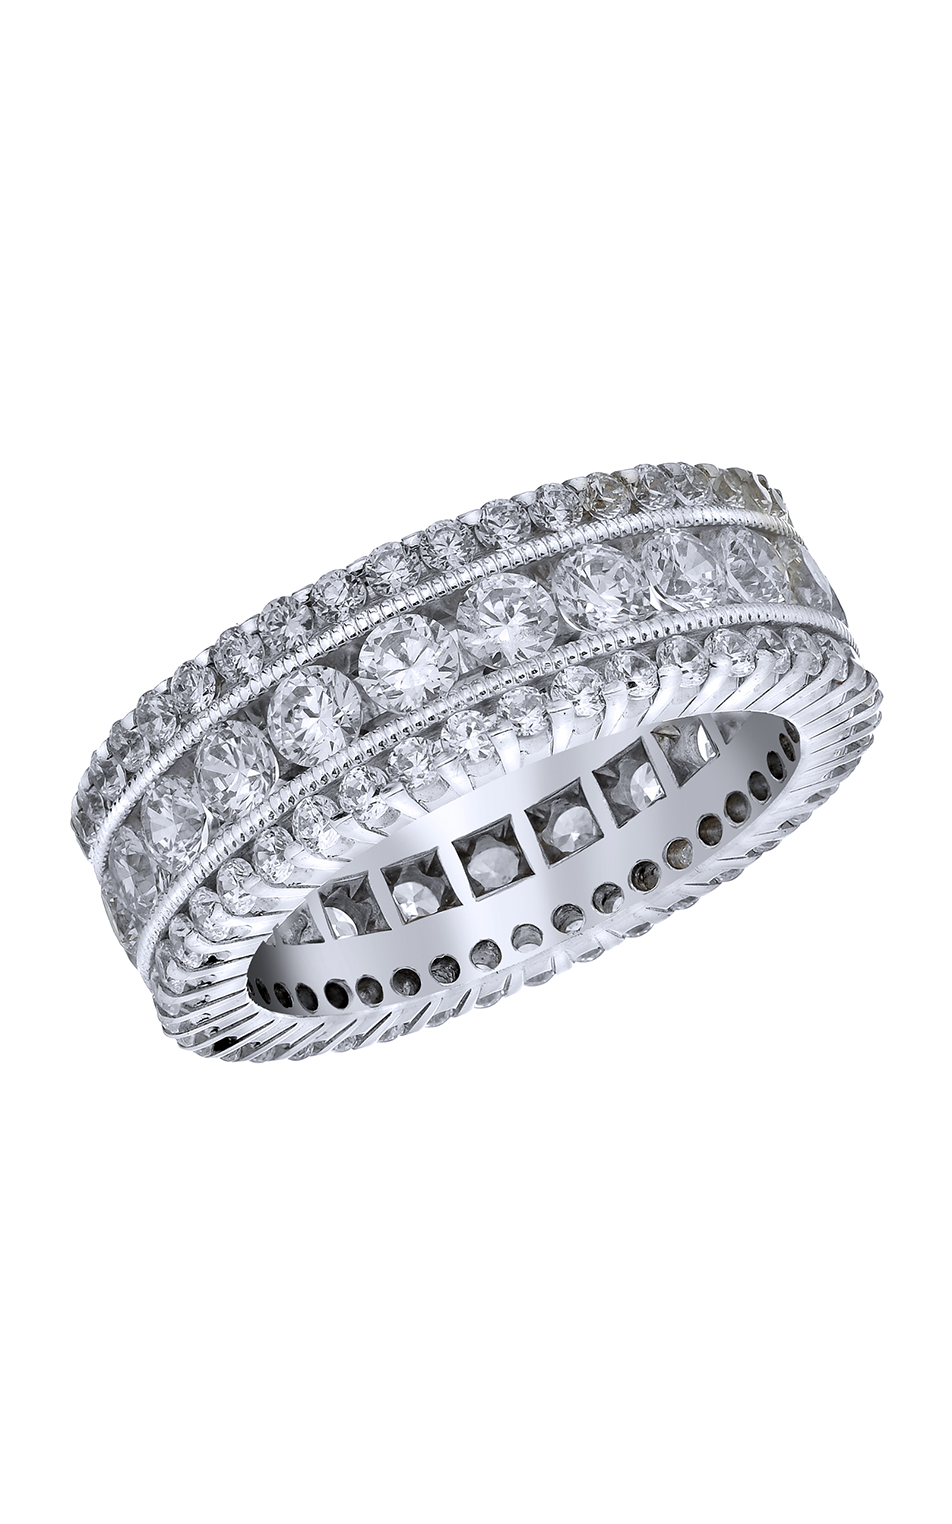 Vibhor Wedding Bands R0542 product image